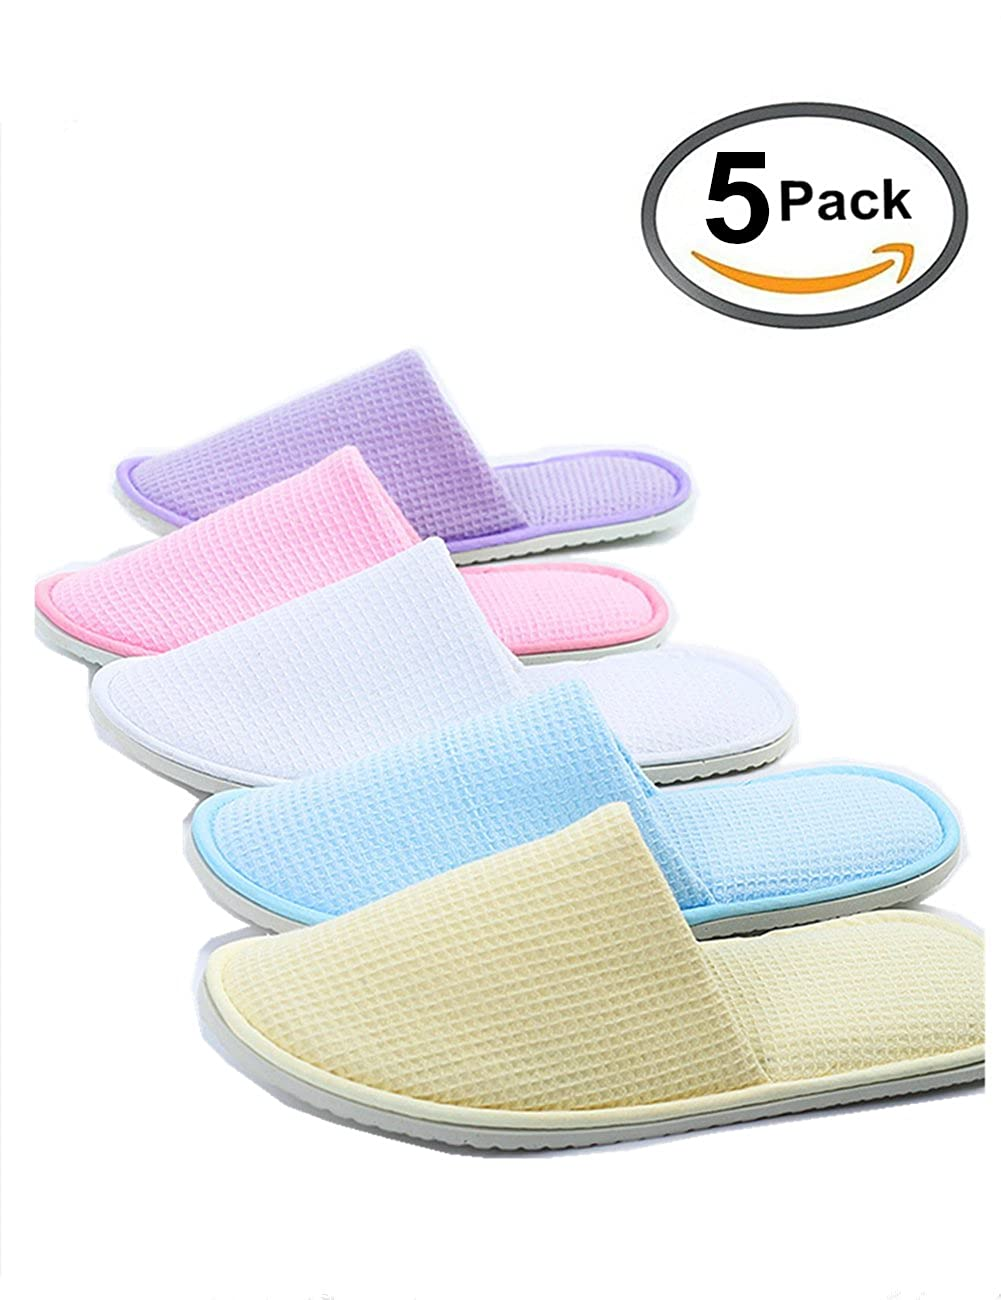 Eucoz 5 Pairs Waffle Spa Slippers Guest Slippers of Mix Colors, Closed Toe, Portable and Disposable